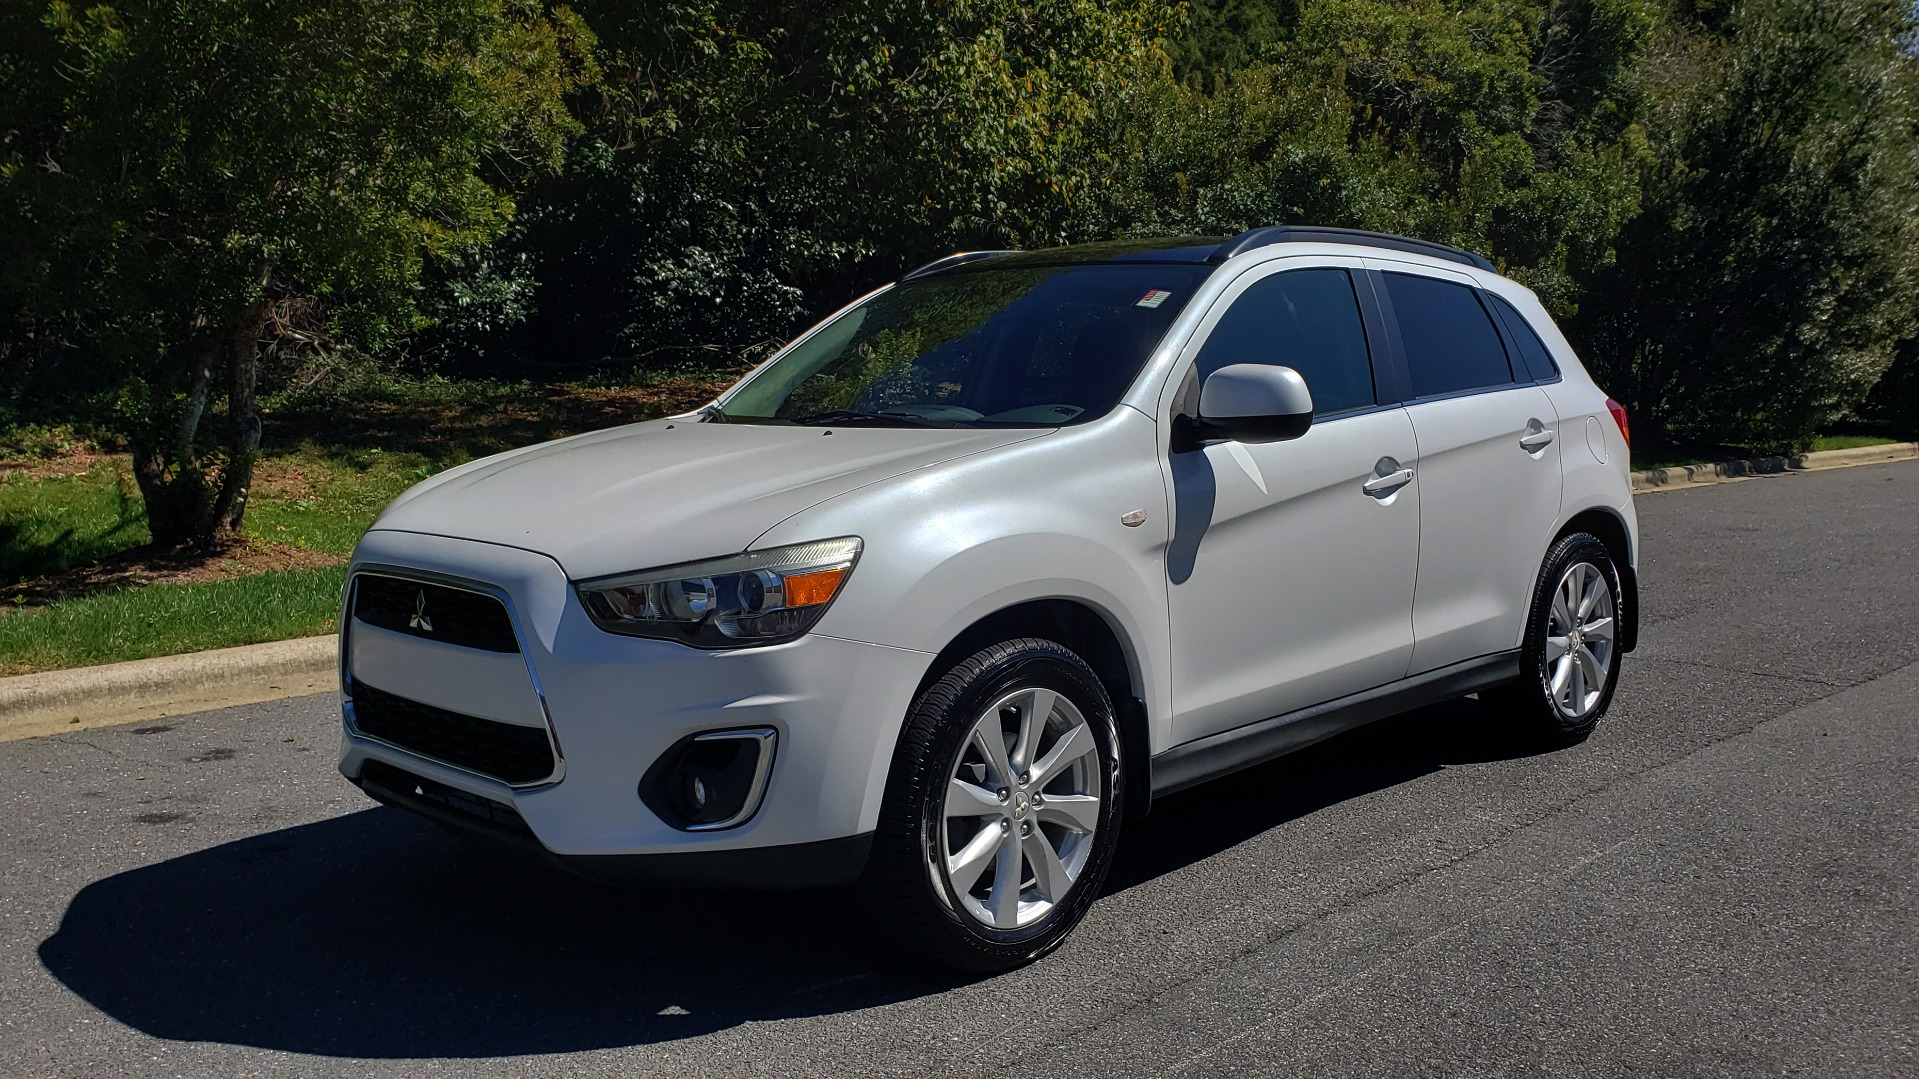 Used 2013 Mitsubishi OUTLANDER SPORT SE / 2WD / 4-DR SUV / CVT TRANS / PREMIUM SOUND / REARVIEW for sale $8,695 at Formula Imports in Charlotte NC 28227 1